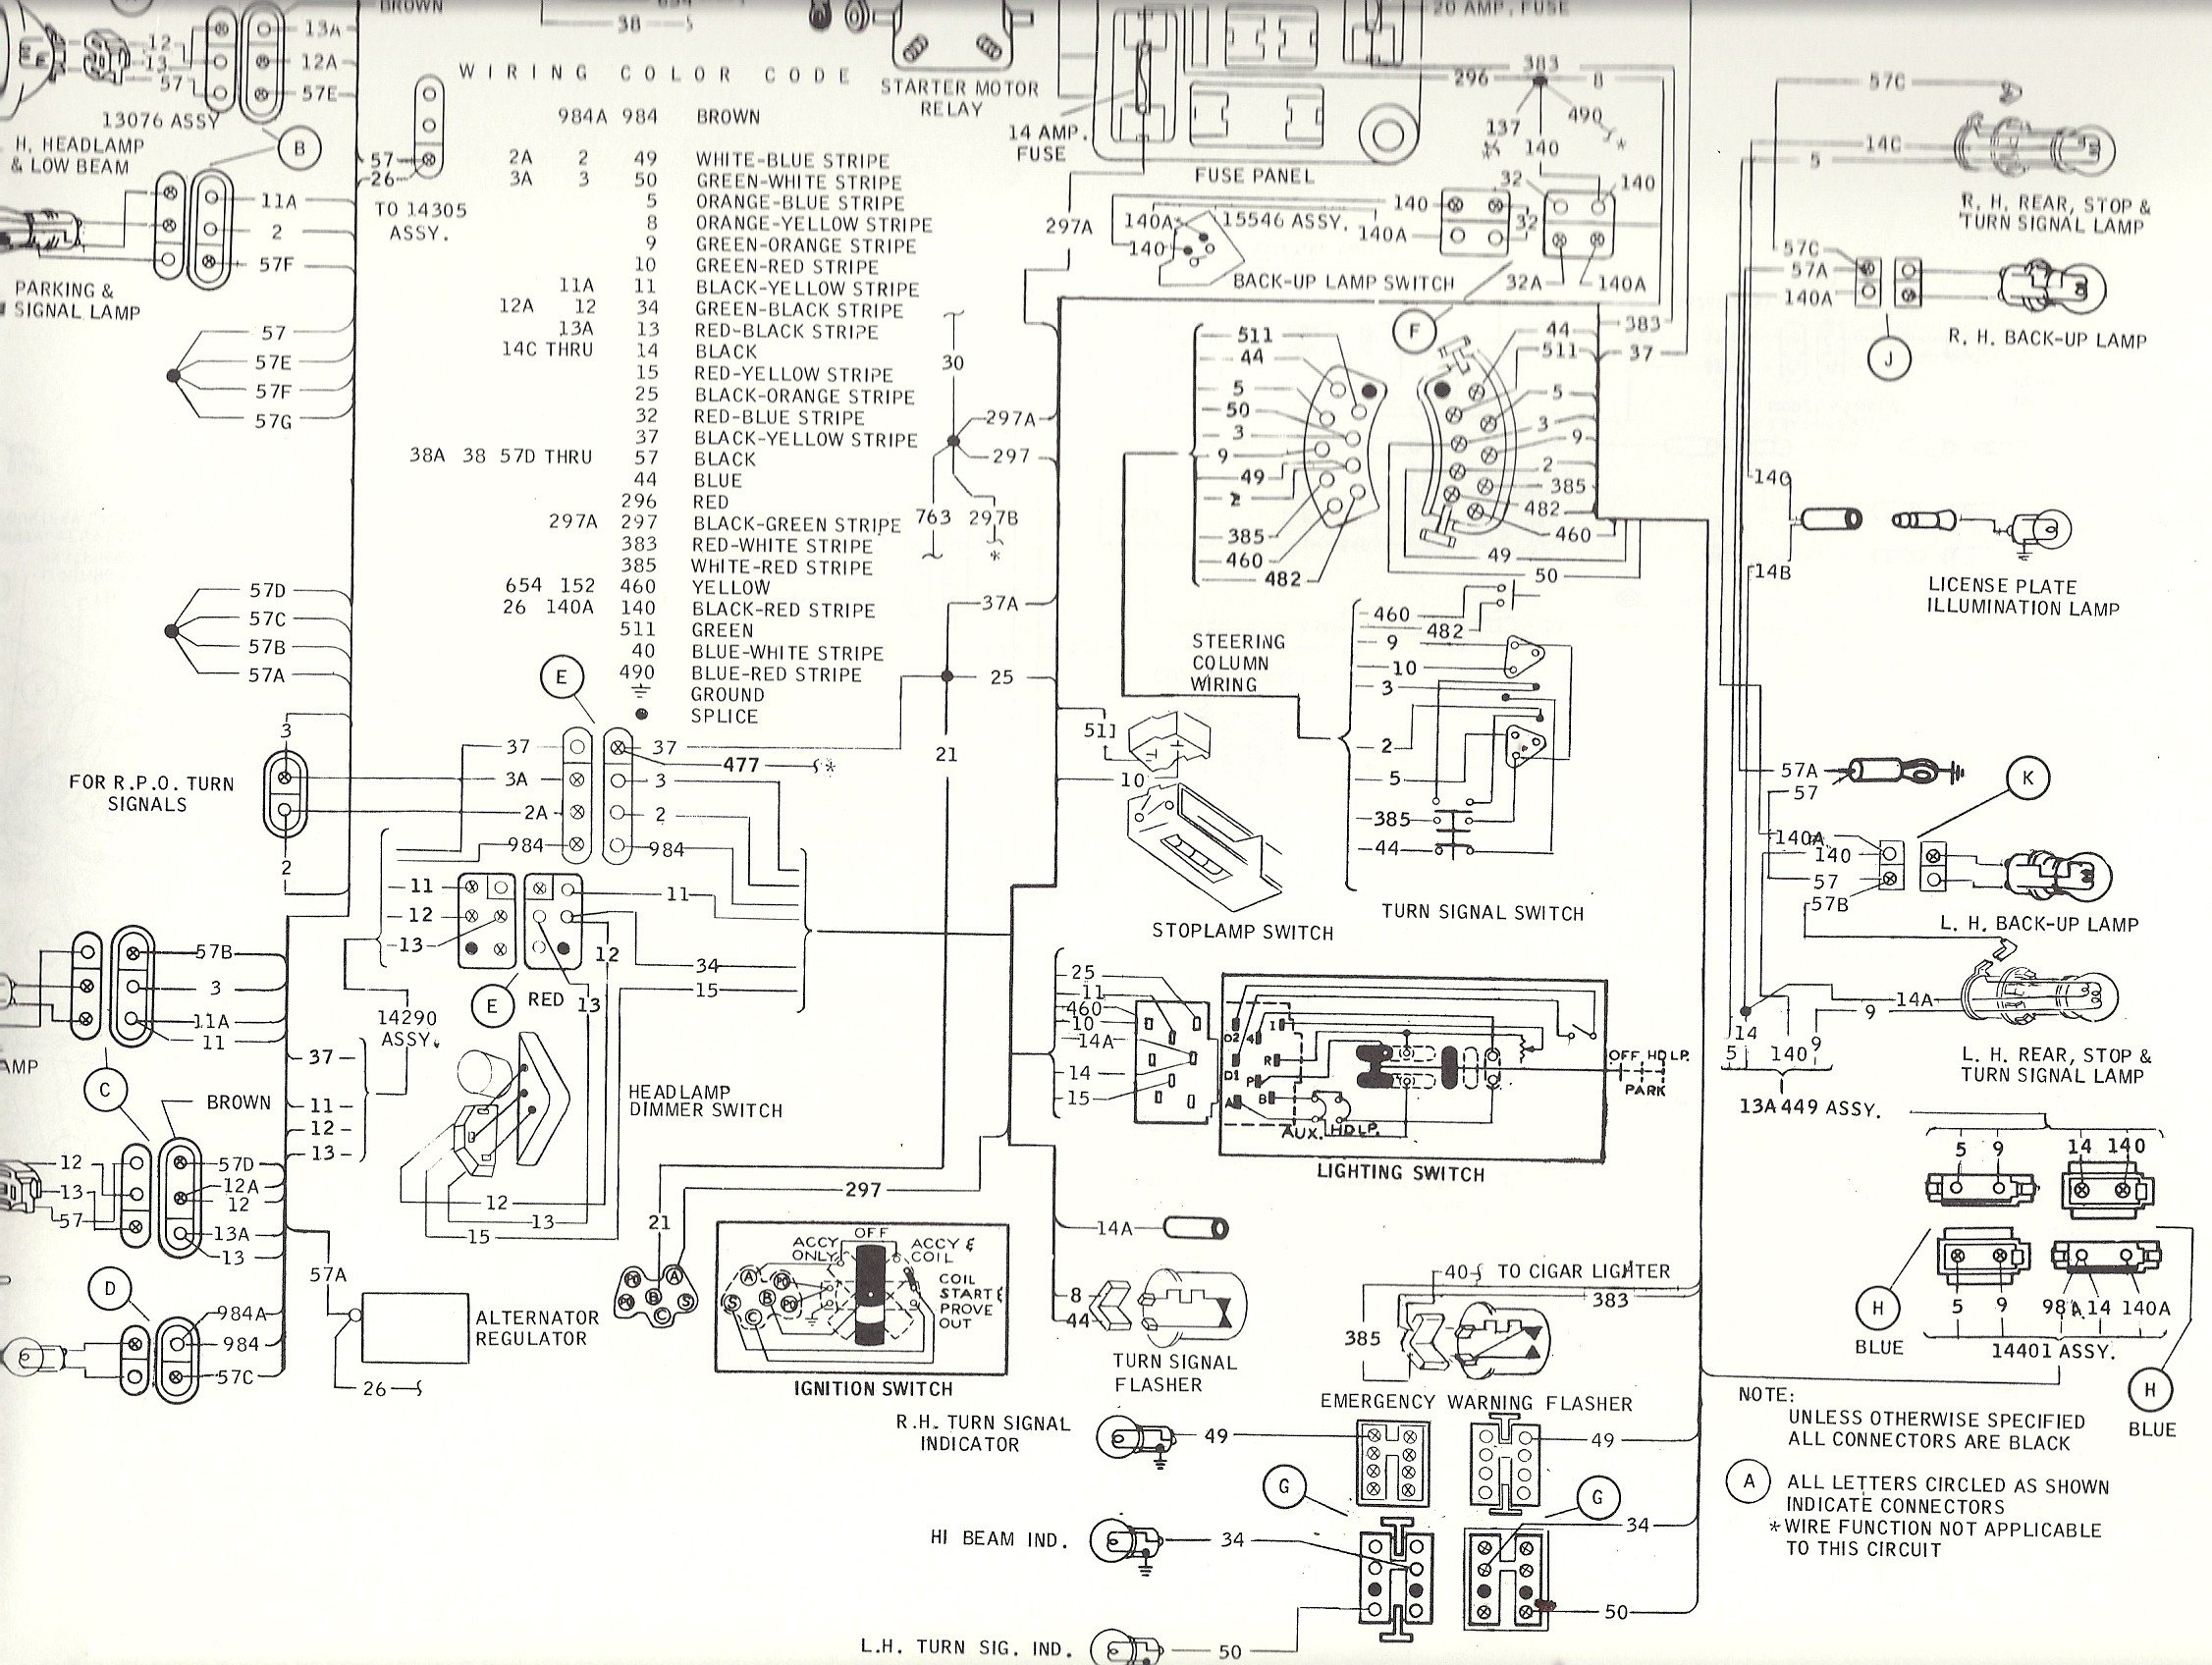 1968 Mustang Turn Signal Wiring Diagram Wiring Diagrams Panel Panel Chatteriedelavalleedufelin Fr